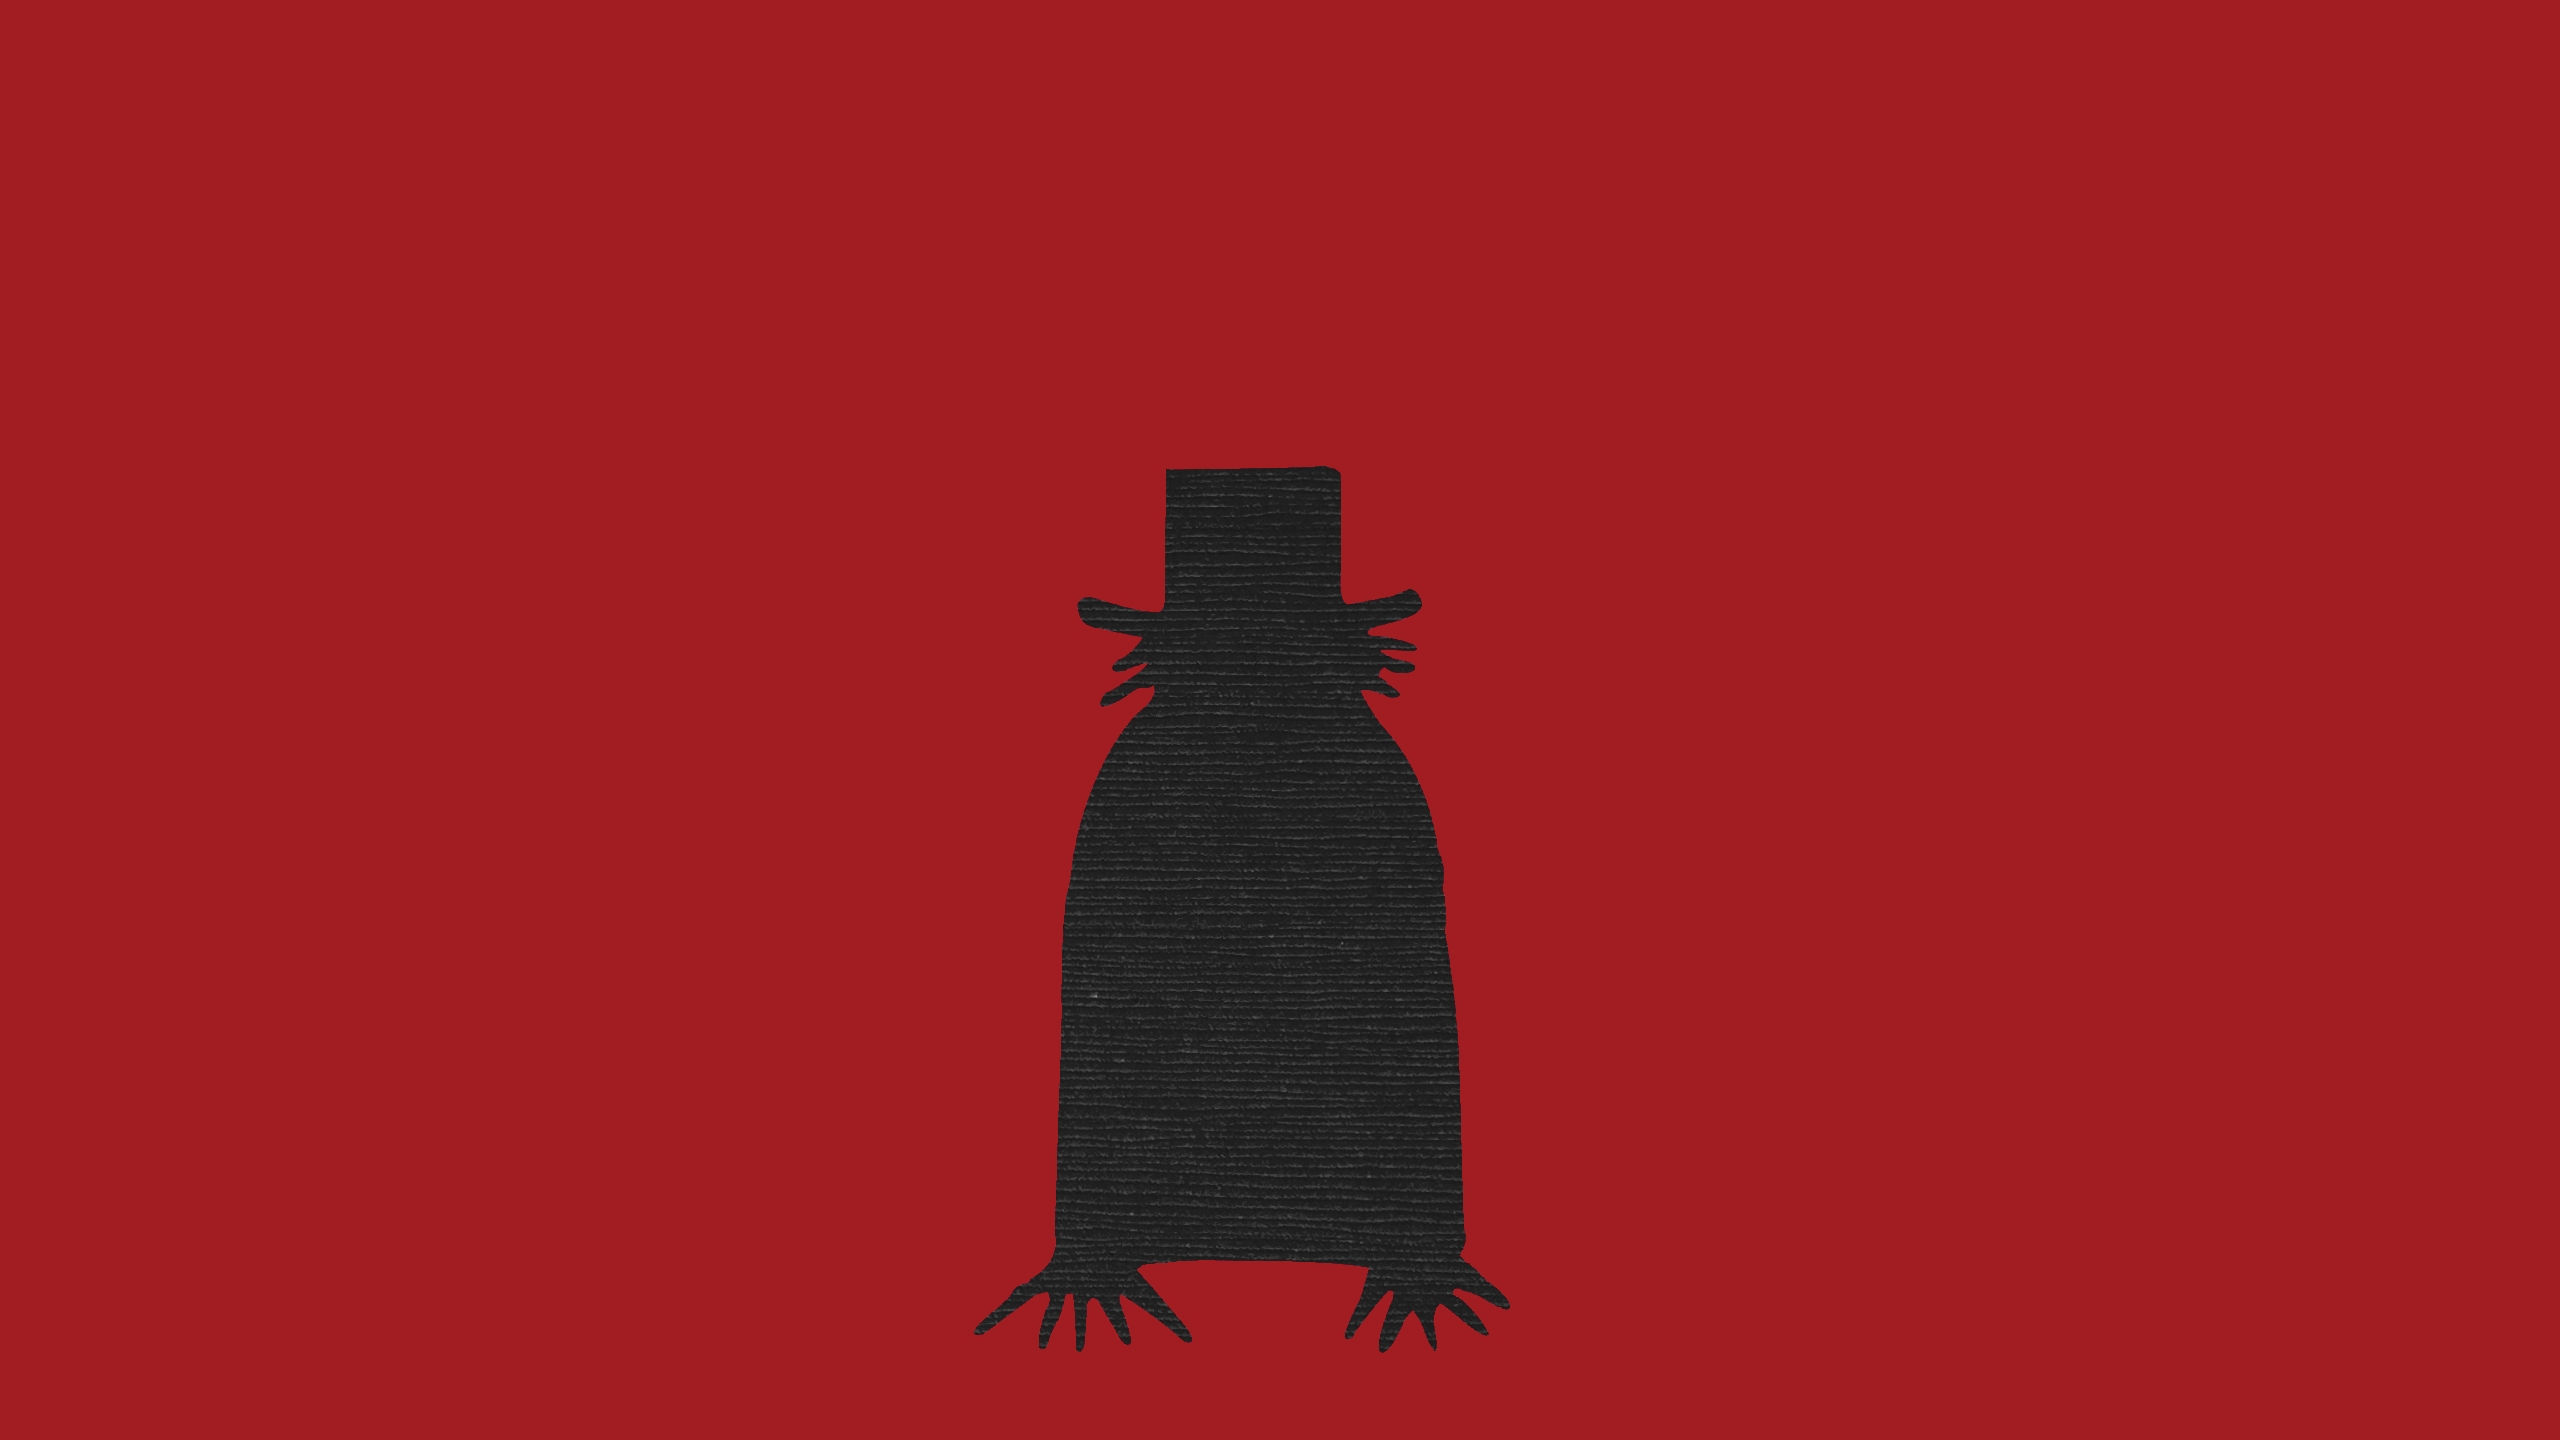 17 The Babadook HD Wallpapers | Background Images ...